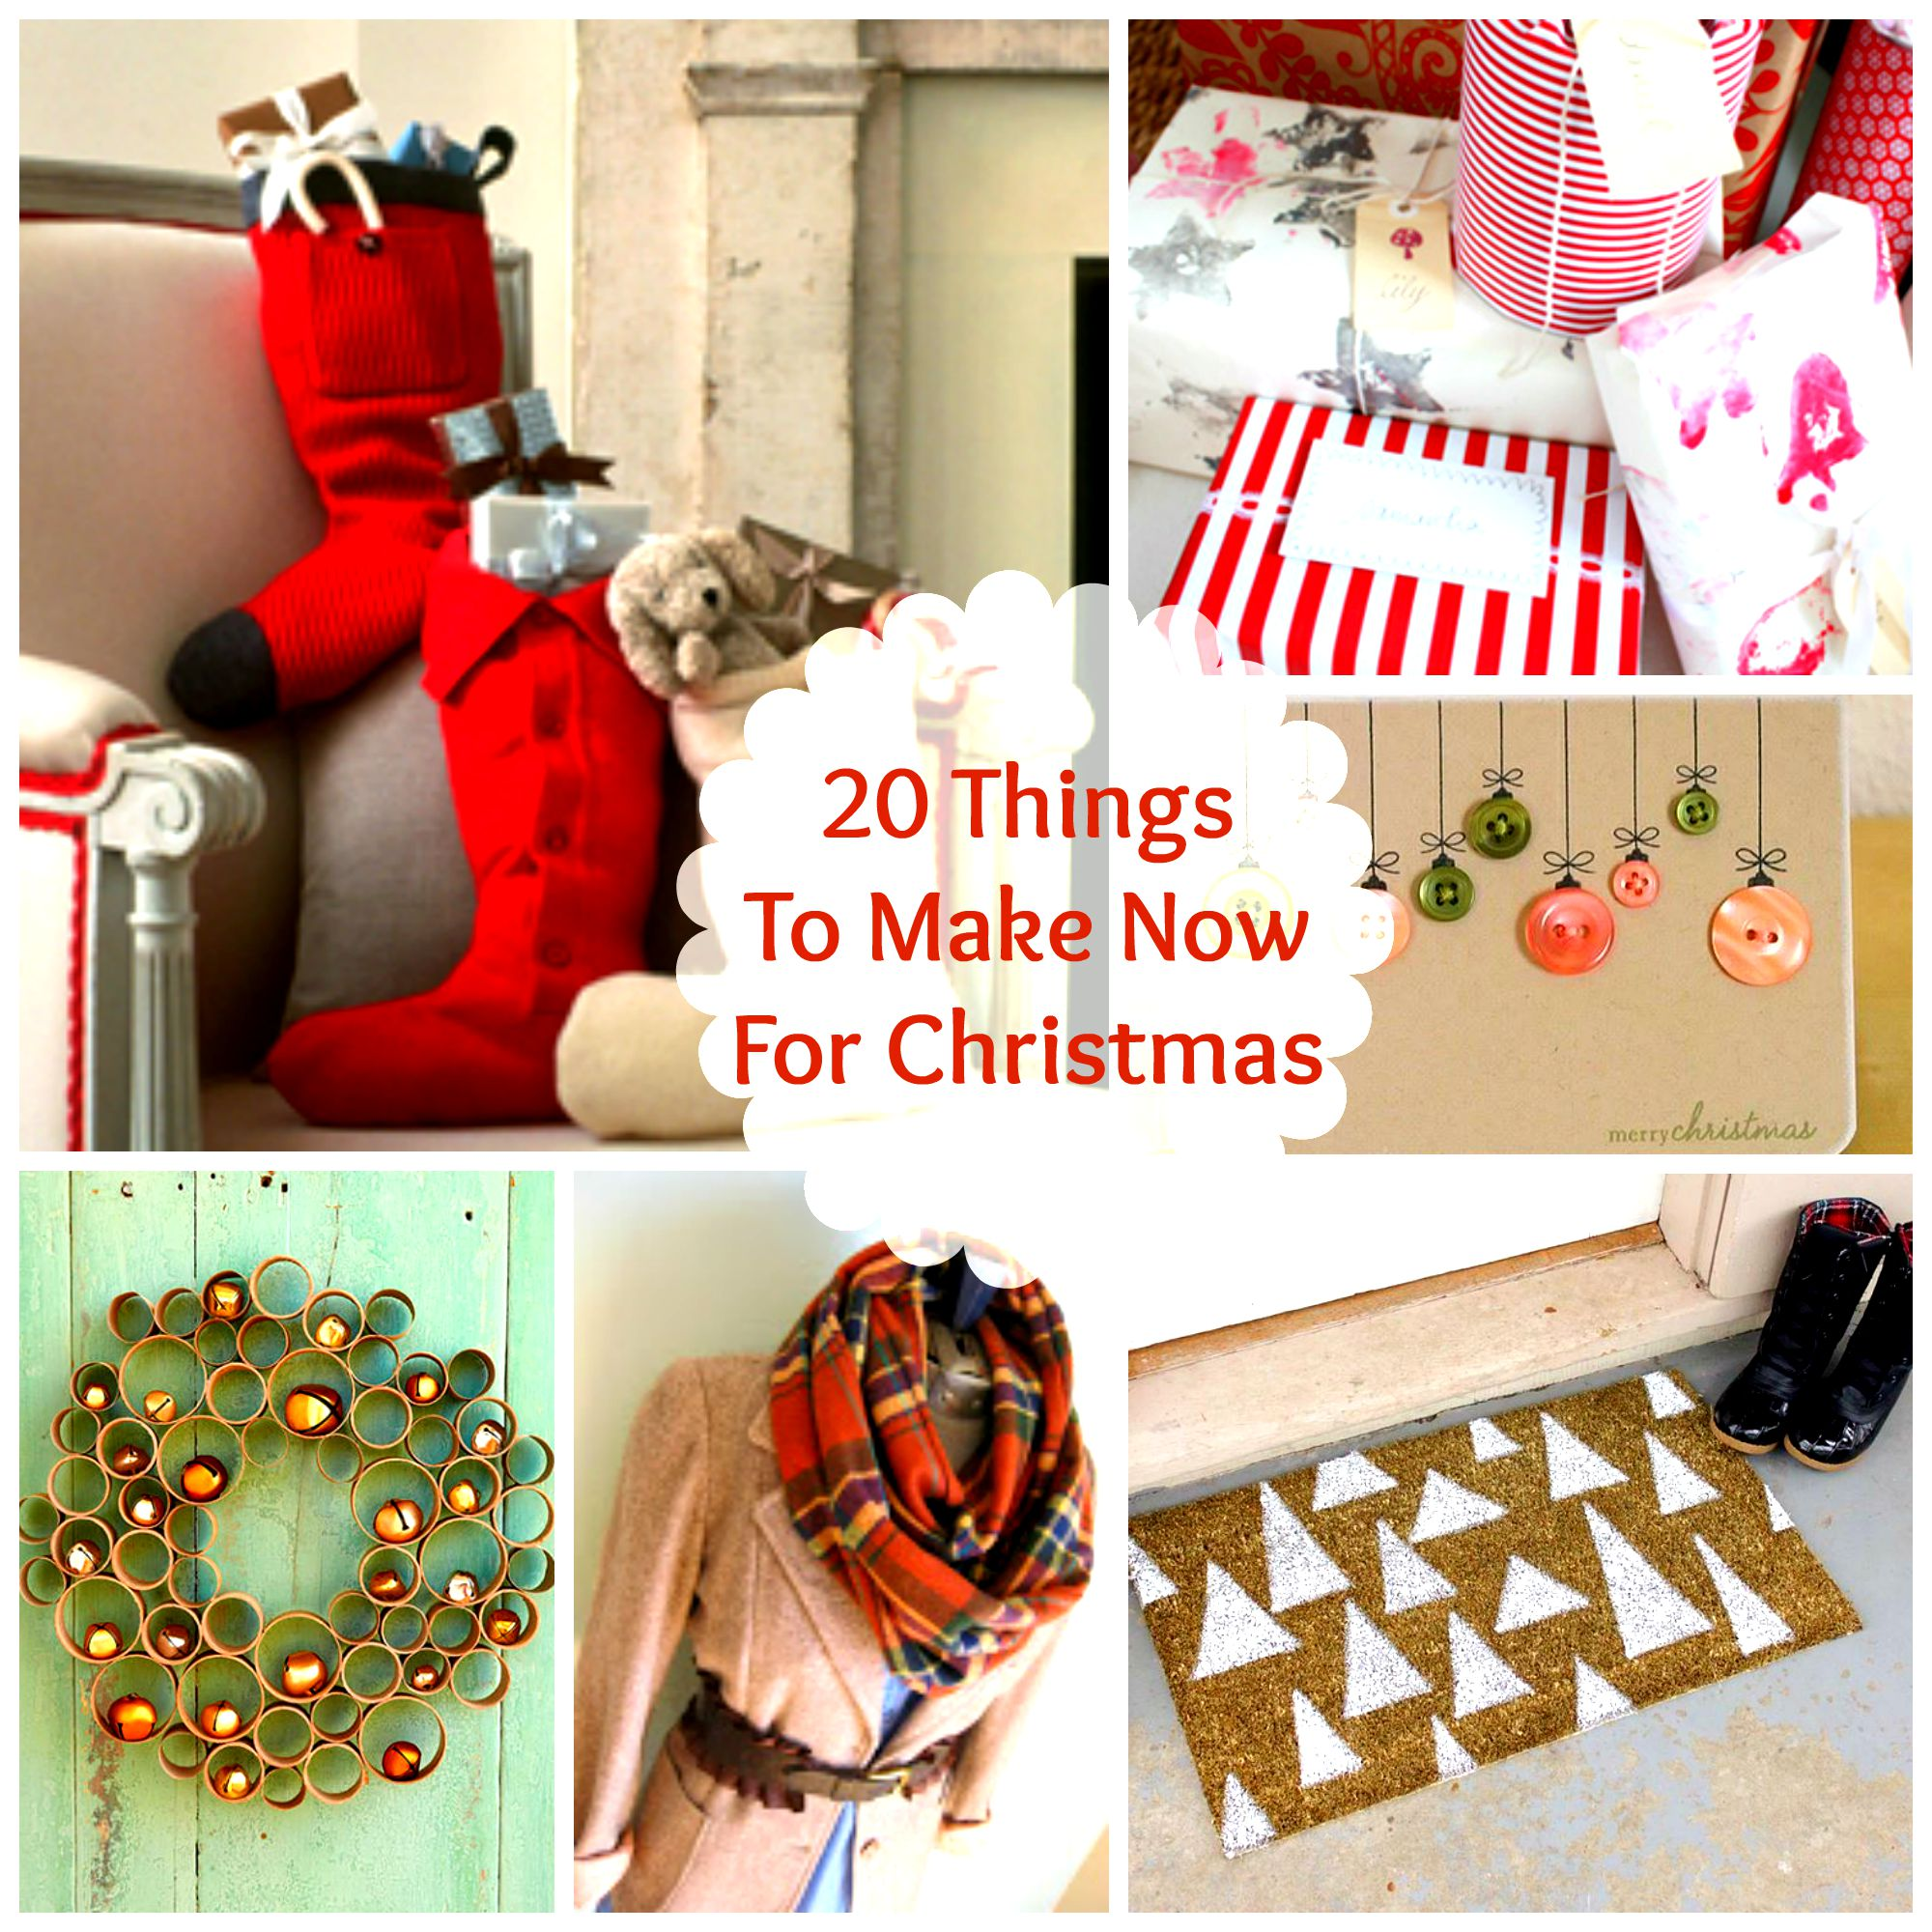 20 Things To Make Now For Christmas - 365 Days of Crafts